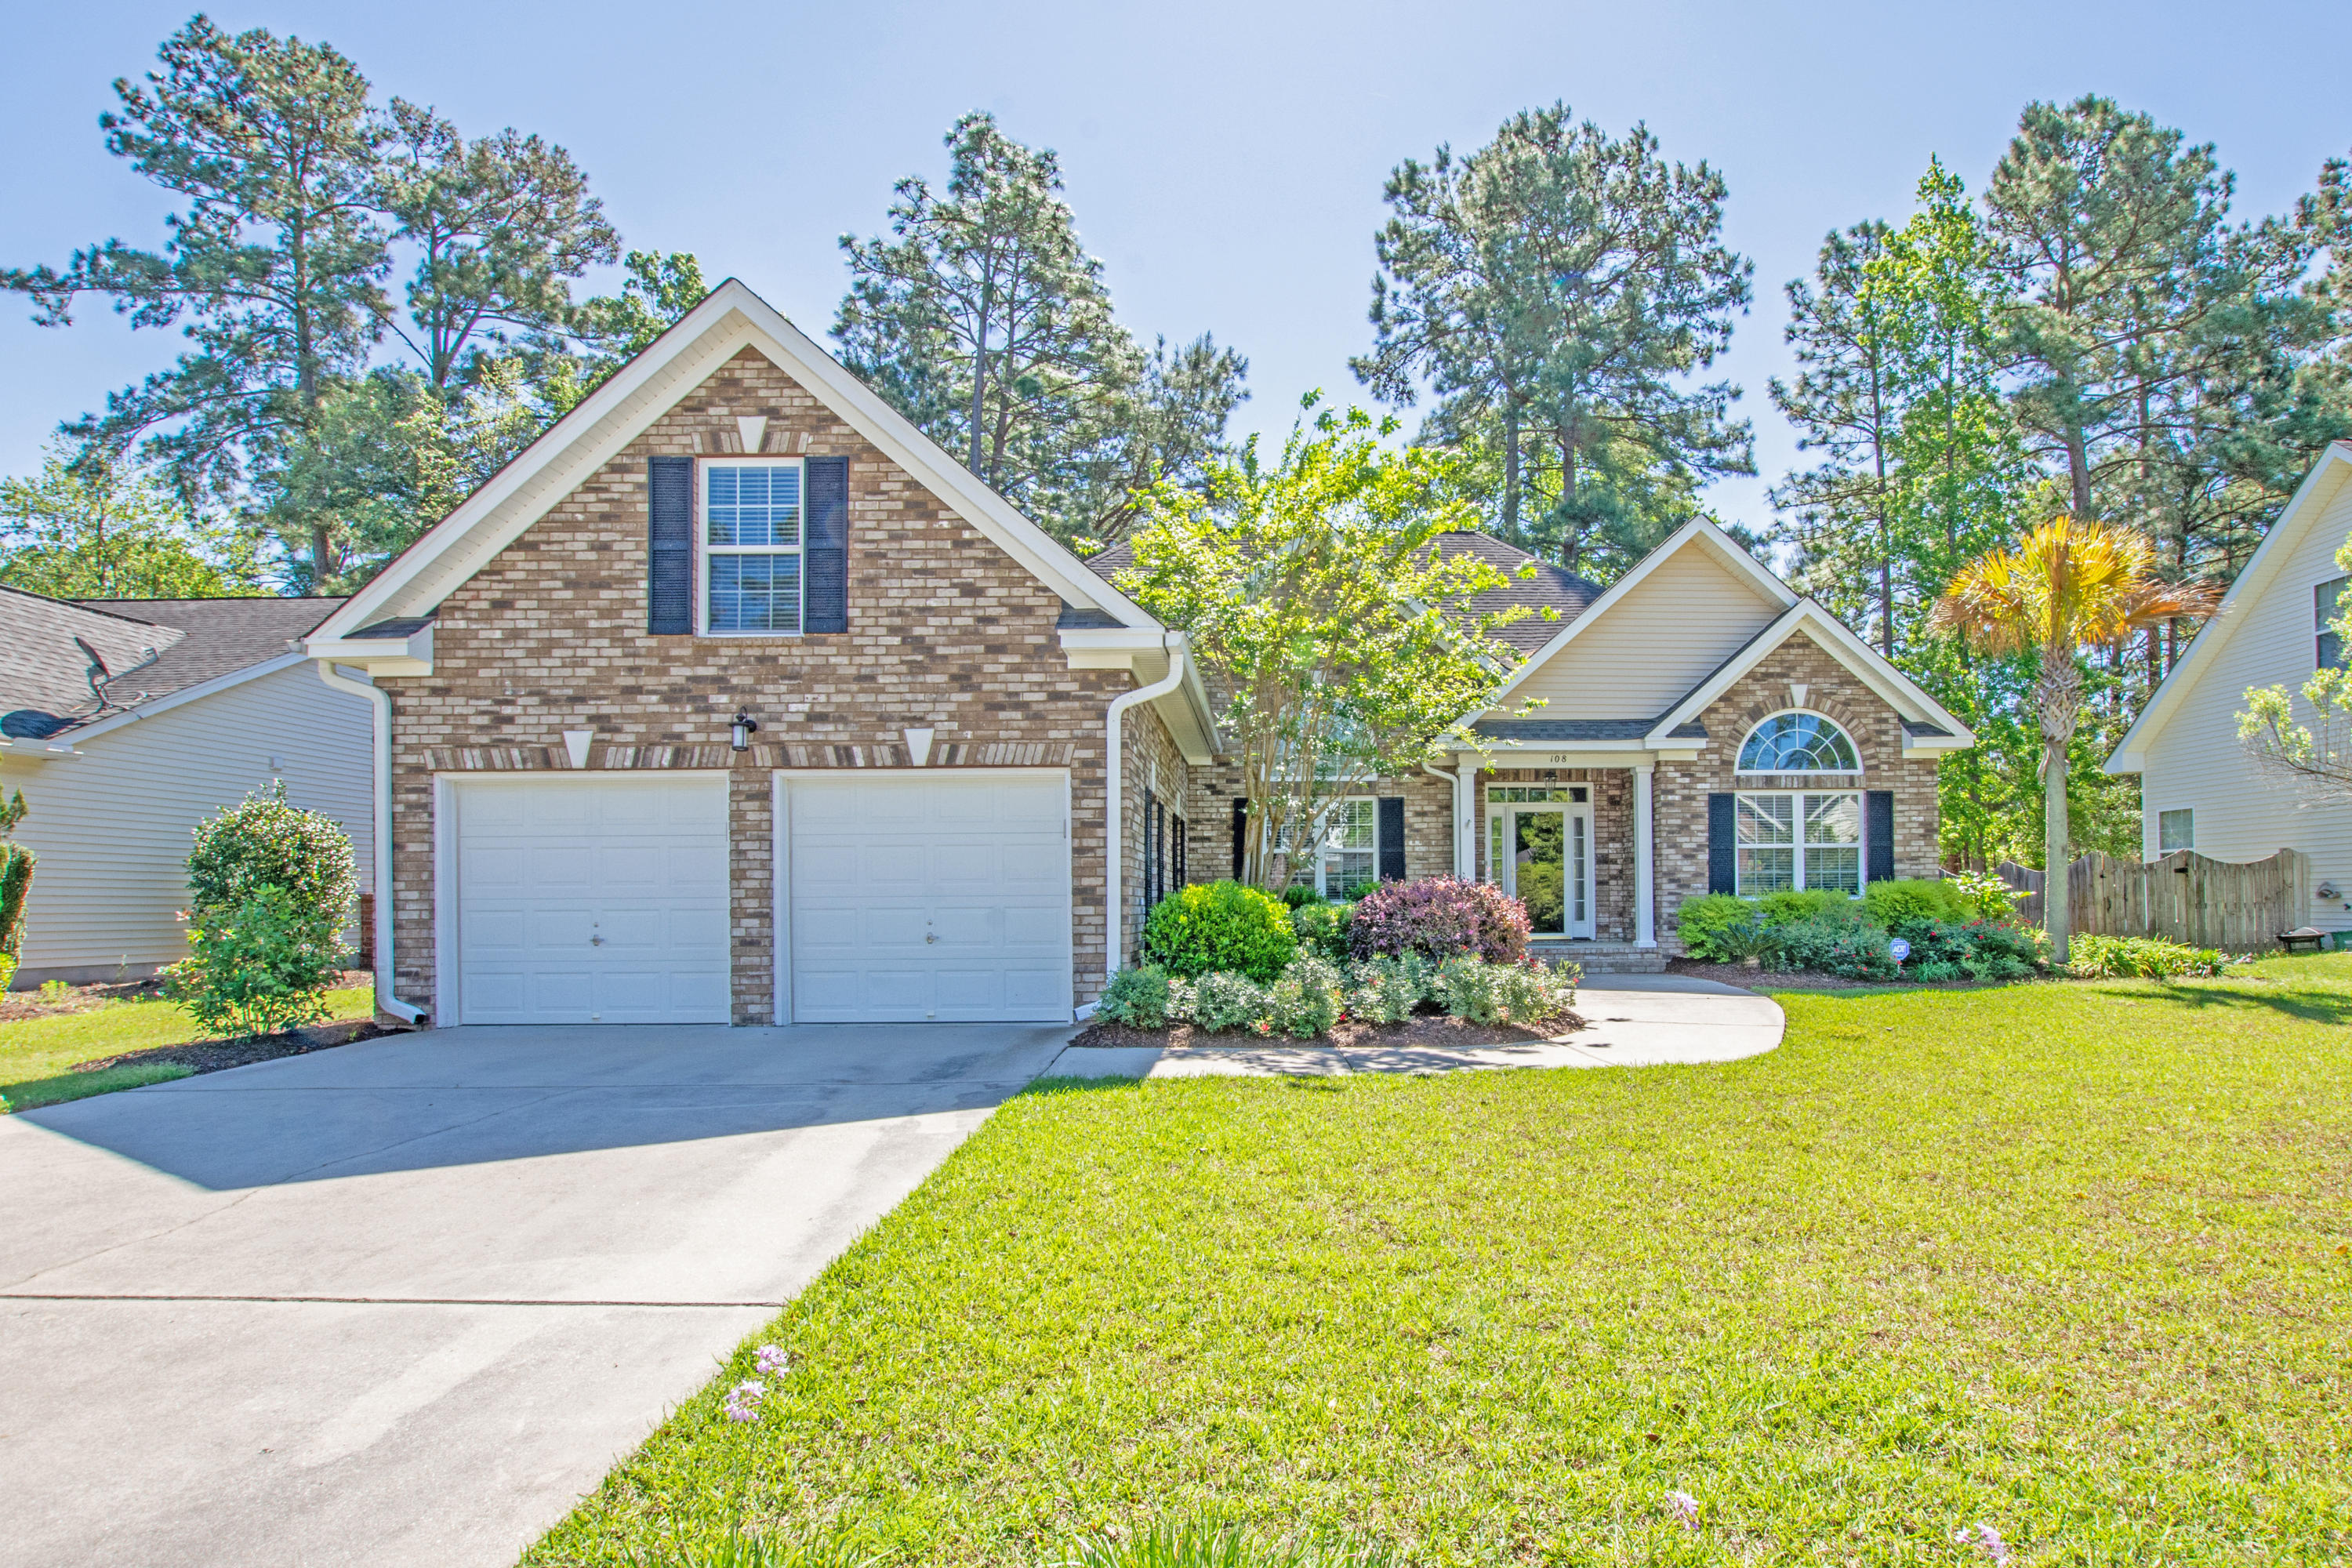 Pine Forest Country Club Homes For Sale - 108 Horseshoe Bay, Summerville, SC - 11